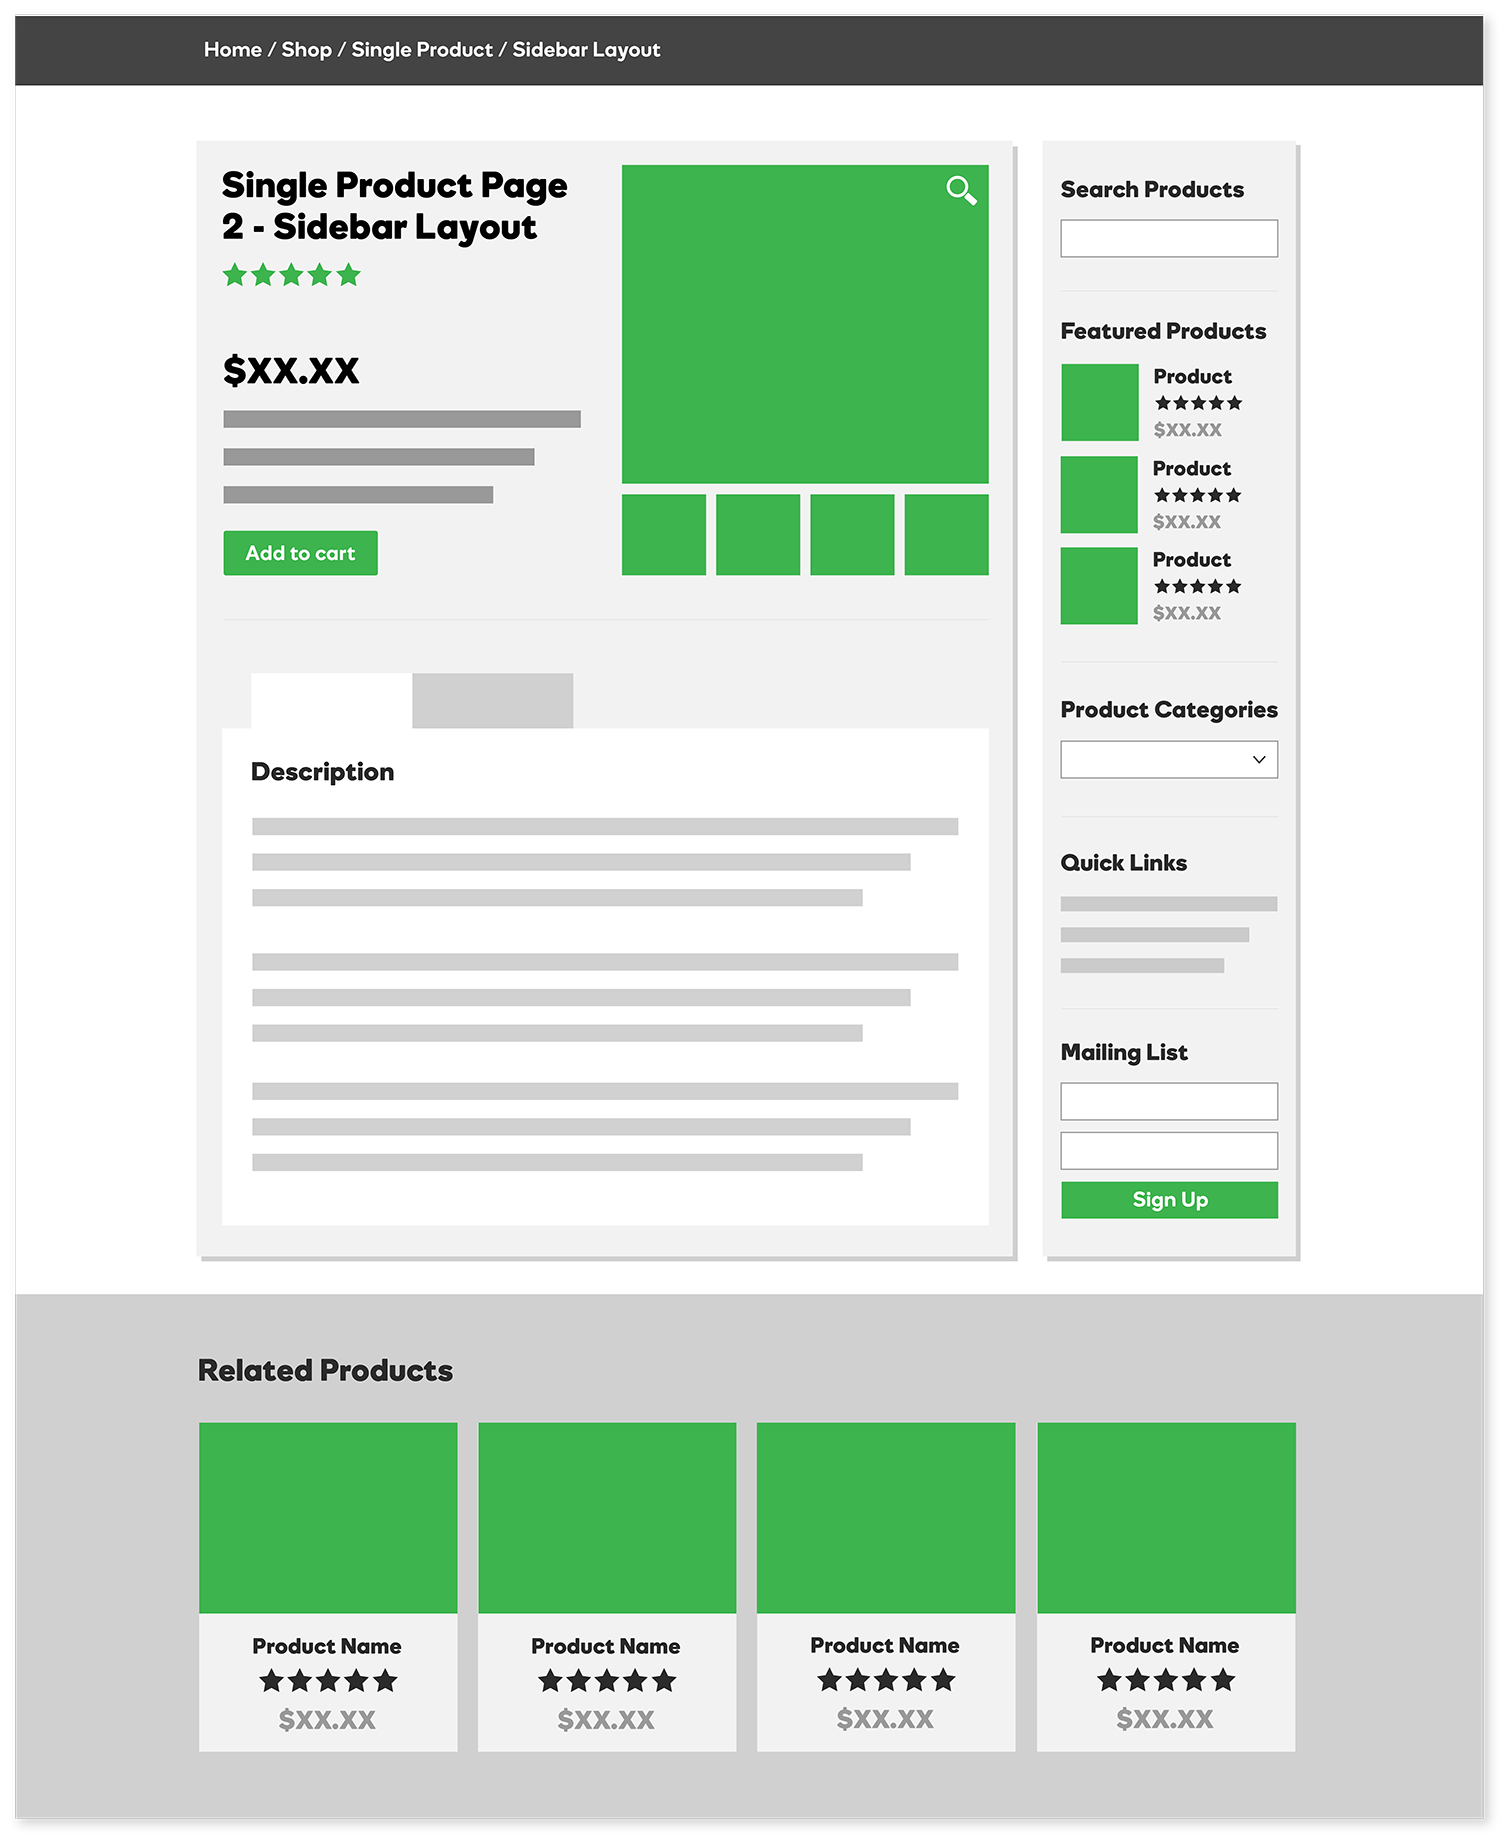 Single Product Page - Sidebar